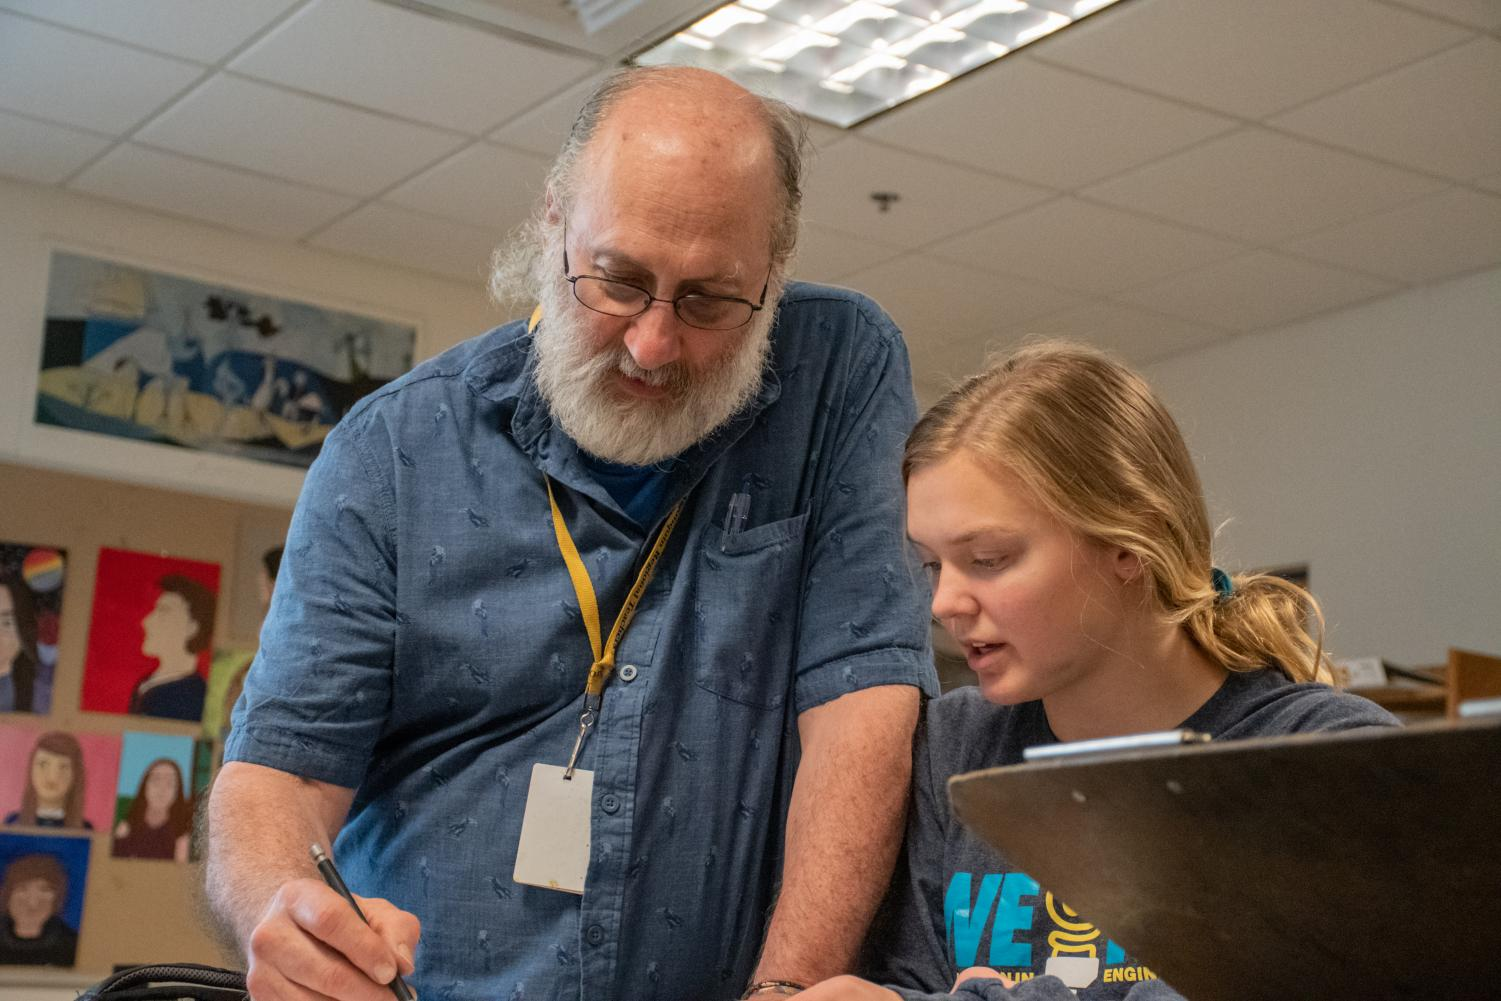 Fine and Performing Arts teacher George Hancin will retire at the end of the school year after 24 years at Algonquin.